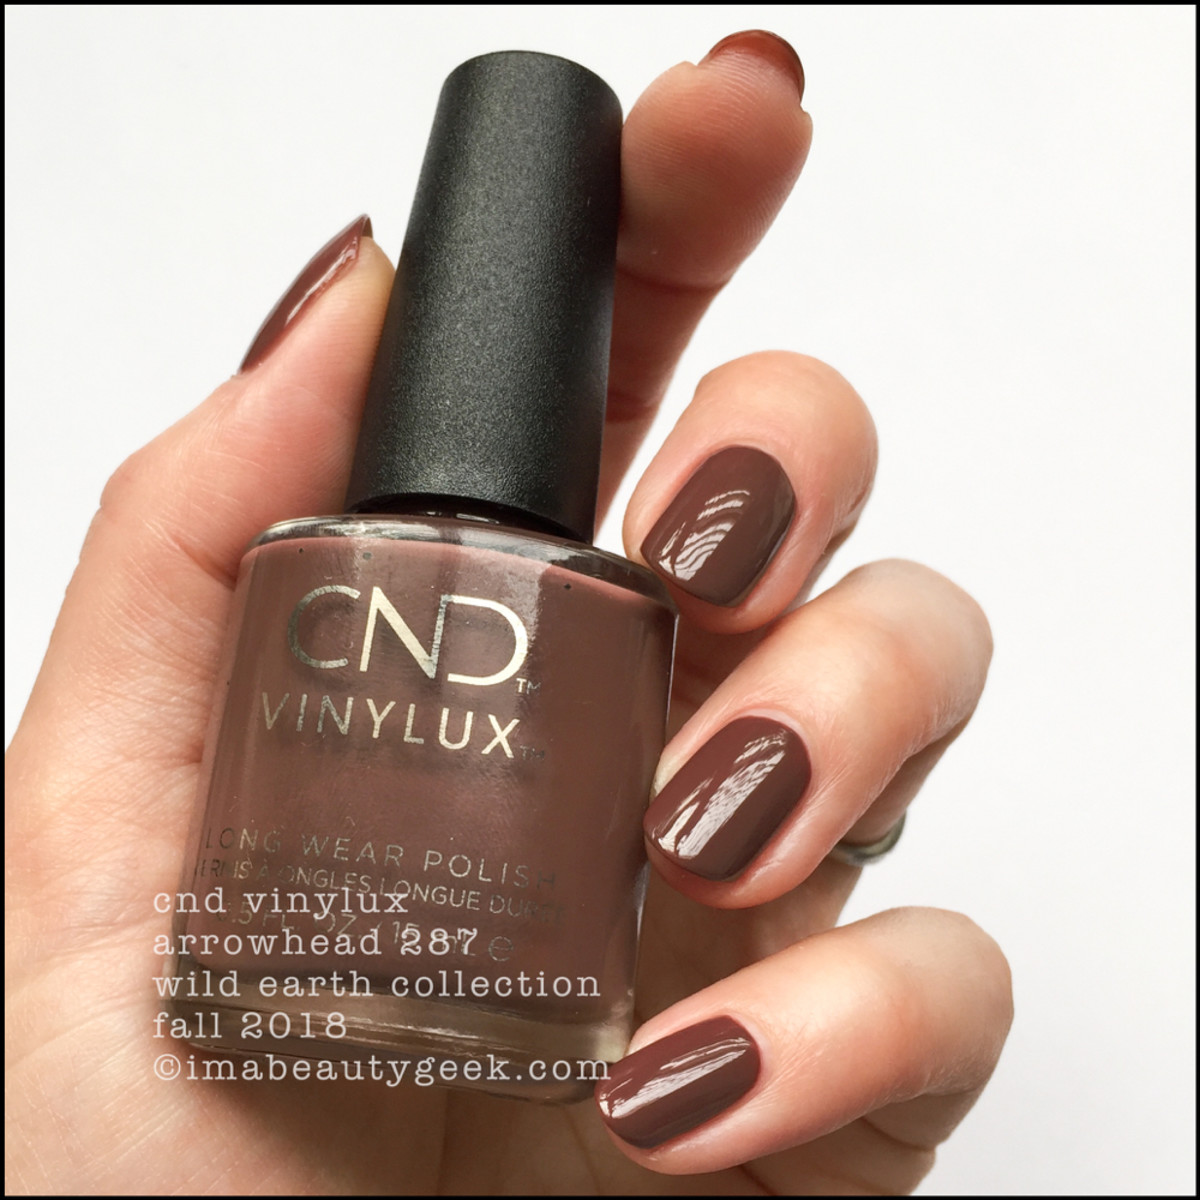 CND Vinylux Arrowhead 287 - CND Wild Earth Fall 2018